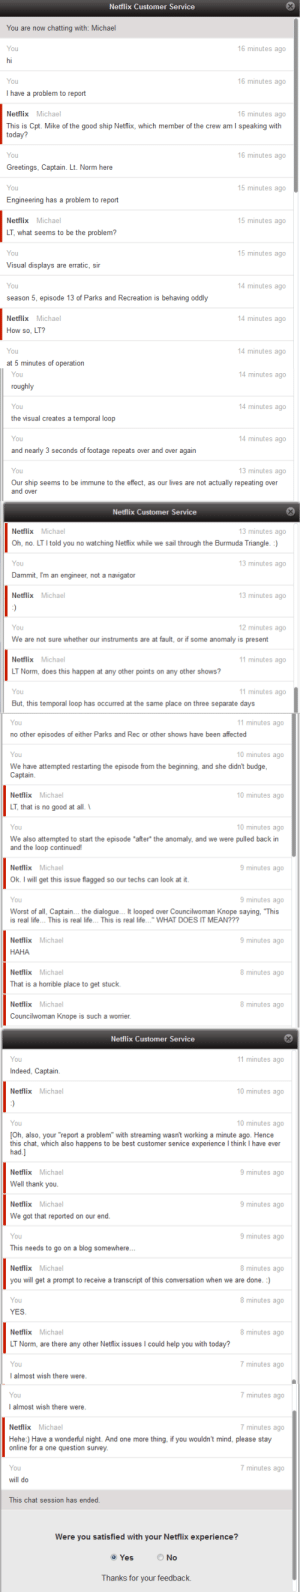 """lordticklefish:  sherkeys:  A Netflix spokesperson confirmed to The Huffington Post that this incredible, """"Star Trek""""-laden back-and-forth between a subscriber and a customer service representative is indeed real.  I now want a job with Netflix. : Netflix Customer Service  You are now chatting with: Michael  16 minutes ago  You  hi  You  16 minutes ago  I have a problem to report  16 minutes ago  Netflix Michael  This is Cpt. Mike of the good ship Netflix, which member of the crew am I speaking with  today?  16 minutes ago  You  Greetings, Captain. Lt. Norm here  15 minutes ago  You  Engineering has a problem to report  15 minutes ago  Netflix Michael  LT, what seems to be the problem?  15 minutes ago  You  Visual displays are erratic, sir  14 minutes ago  You  season 5, episode 13 of Parks and Recreation is behaving oddly  14 minutes ago  Netflix Michael  How so, LT?  14 minutes ago  You  at 5 minutes of operation   14 minutes ago  You  roughly  14 minutes ago  You  the visual creates a temporal loop  14 minutes ago  You  and nearly 3 seconds of footage repeats over and over again  13 minutes ago  You  Our ship seems to be immune to the effect, as our lives are not actually repeating over  and over  Netflix Customer Service  13 minutes ago  Netflix Michael  Oh, no. LT I told you no watching Netfix while we sail through the Burmuda Triangle. :)  13 minutes ago  You  Dammit, I'm an engineer, not a navigator  13 minutes ago  Netflix Michael  :)  12 minutes ago  You  We are not sure whether our instruments are at fault, or if some anomaly is present  11 minutes ago  Netflix Michael  LT Norm, does this happen at any other points on any other shows?  11 minutes ago  You  But, this temporal loop has occurred at the same place on three separate days   11 minutes ago  You  no other episodes of either Parks and Rec or other shows have been affected  10 minutes ago  You  We have attempted restarting the episode from the beginning, and she didn't budge,  Captain.  10 minutes a"""